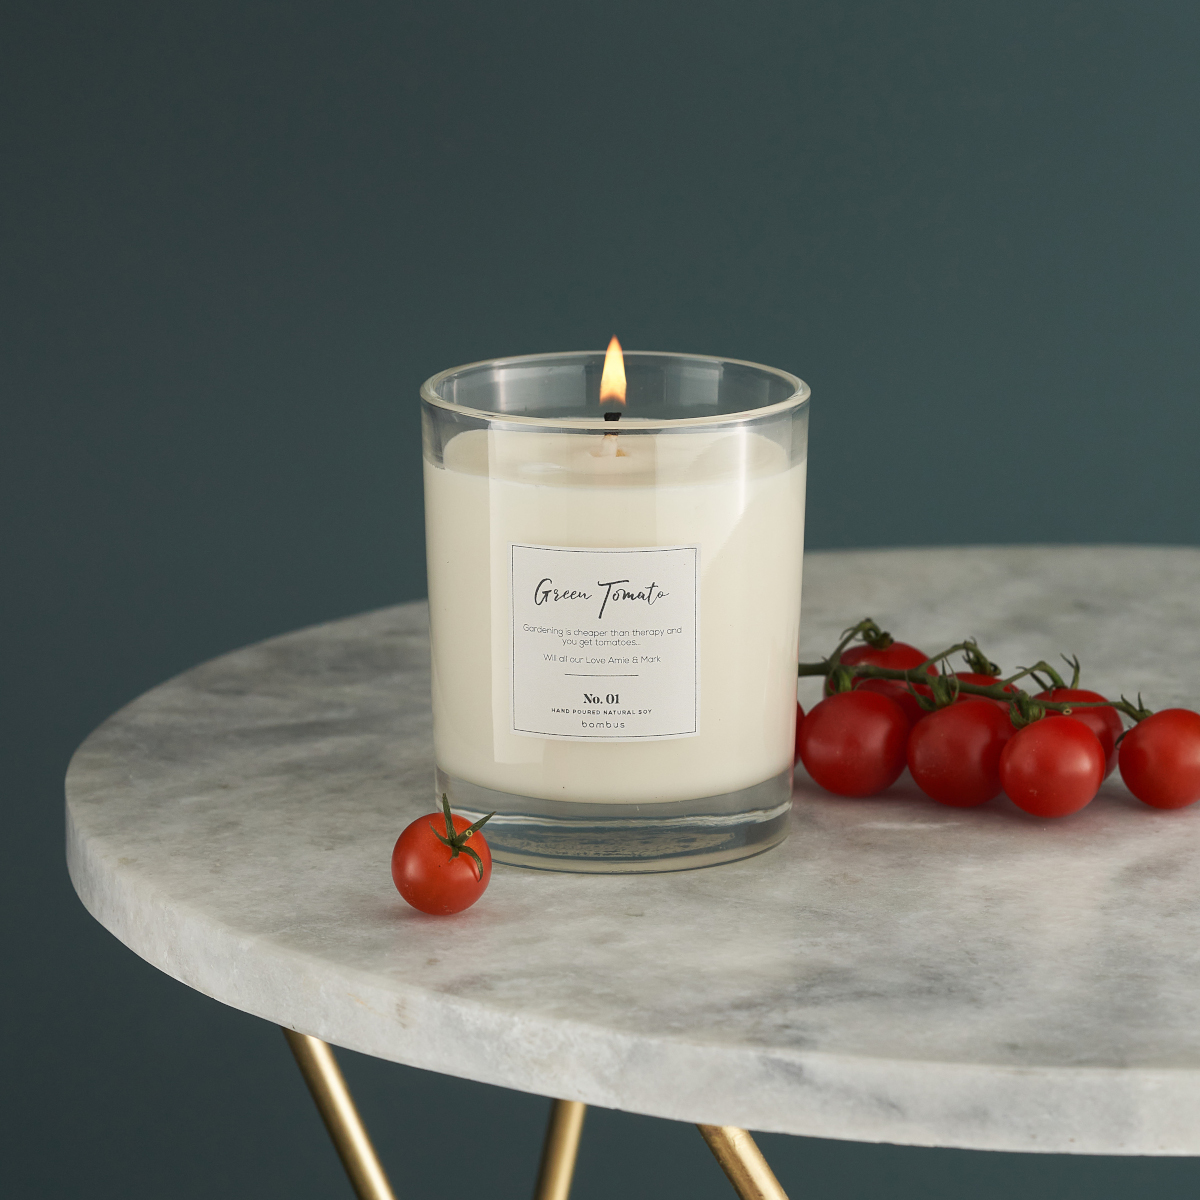 Luxury Soy Candle with Green Tomato Scent